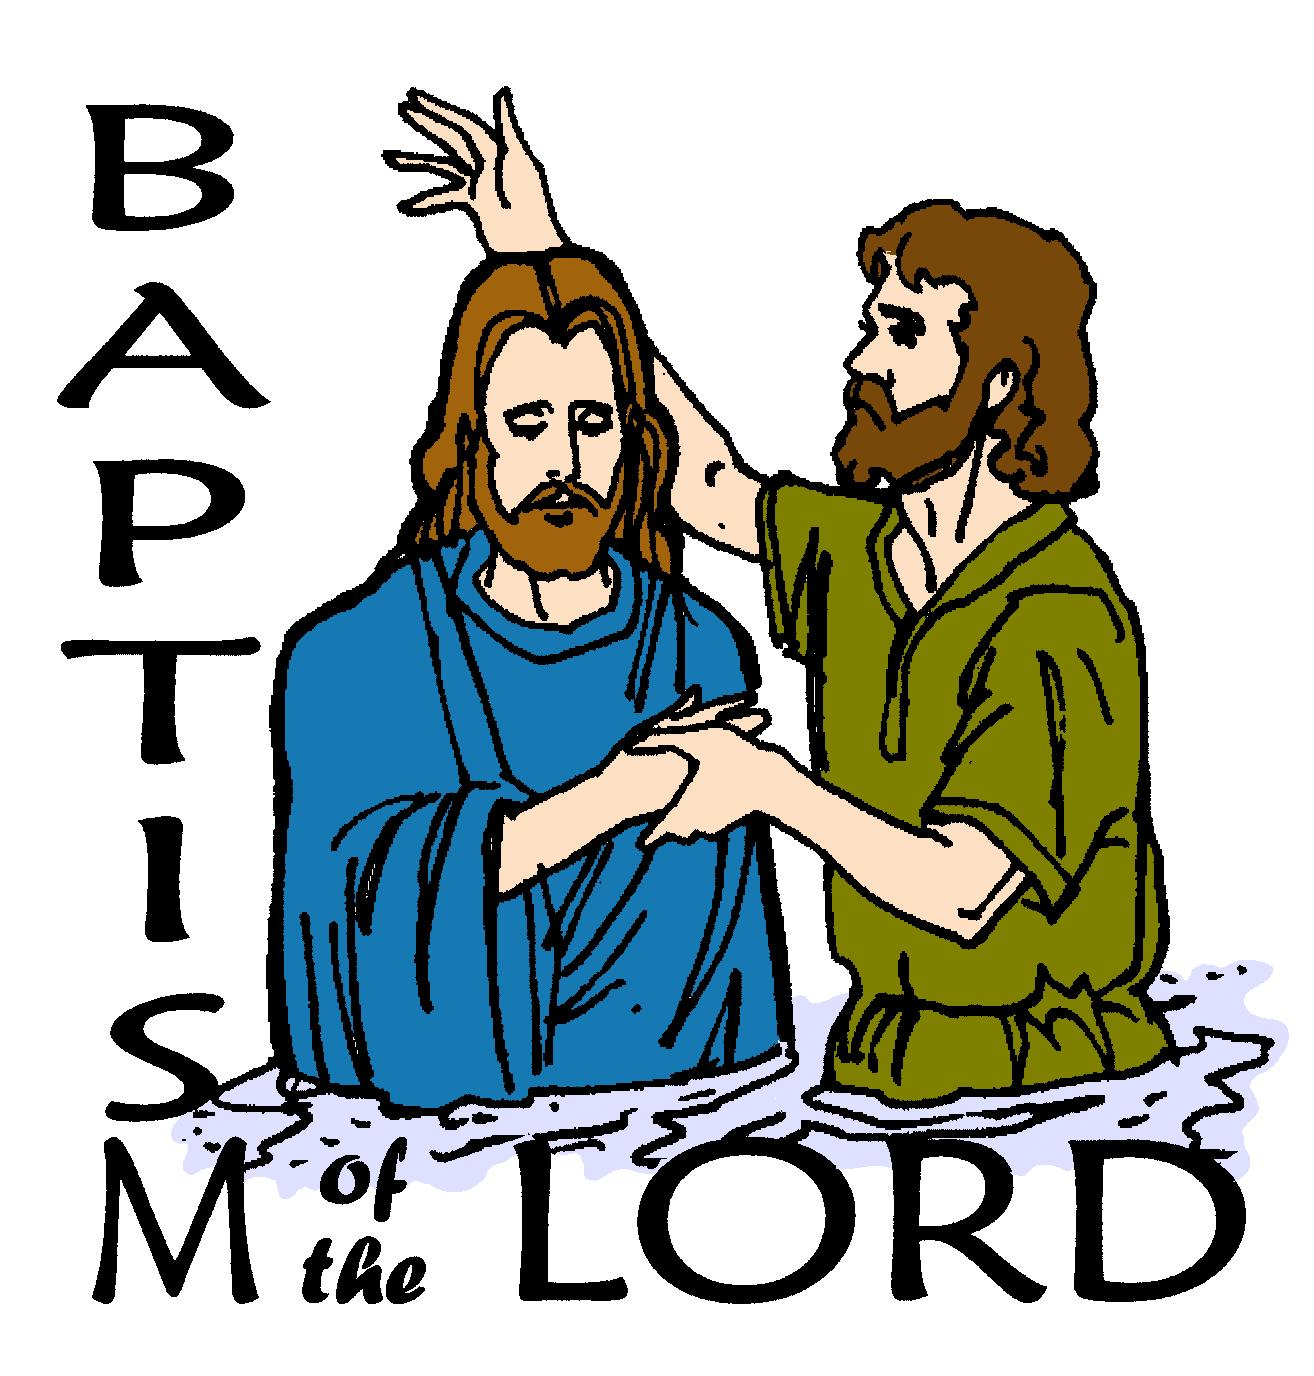 baptism of the lord free clipart #5